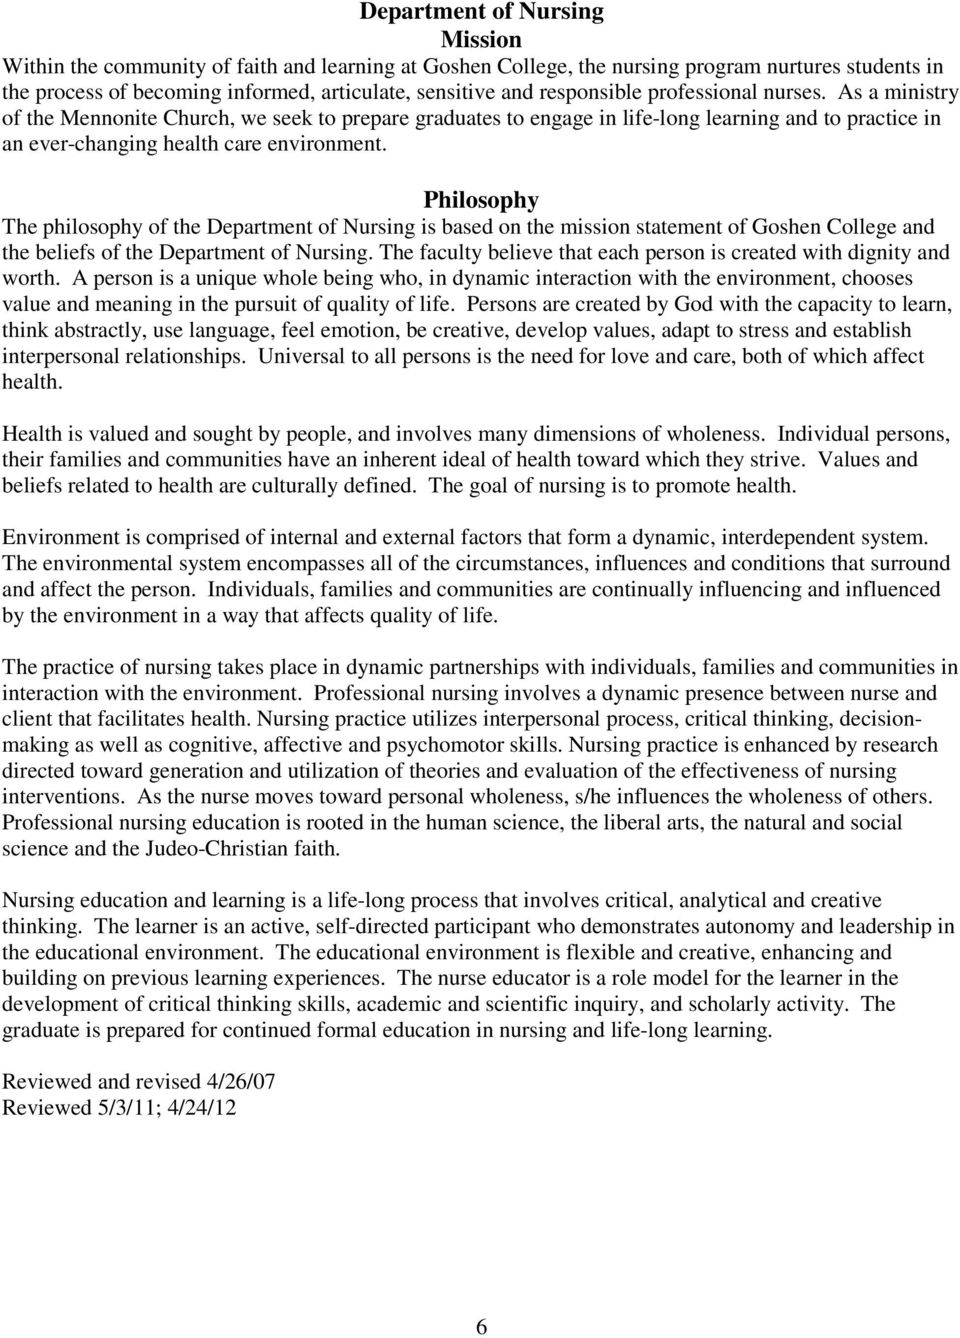 Philosophy The philosophy of the Department of Nursing is based on the mission statement of Goshen College and the beliefs of the Department of Nursing.